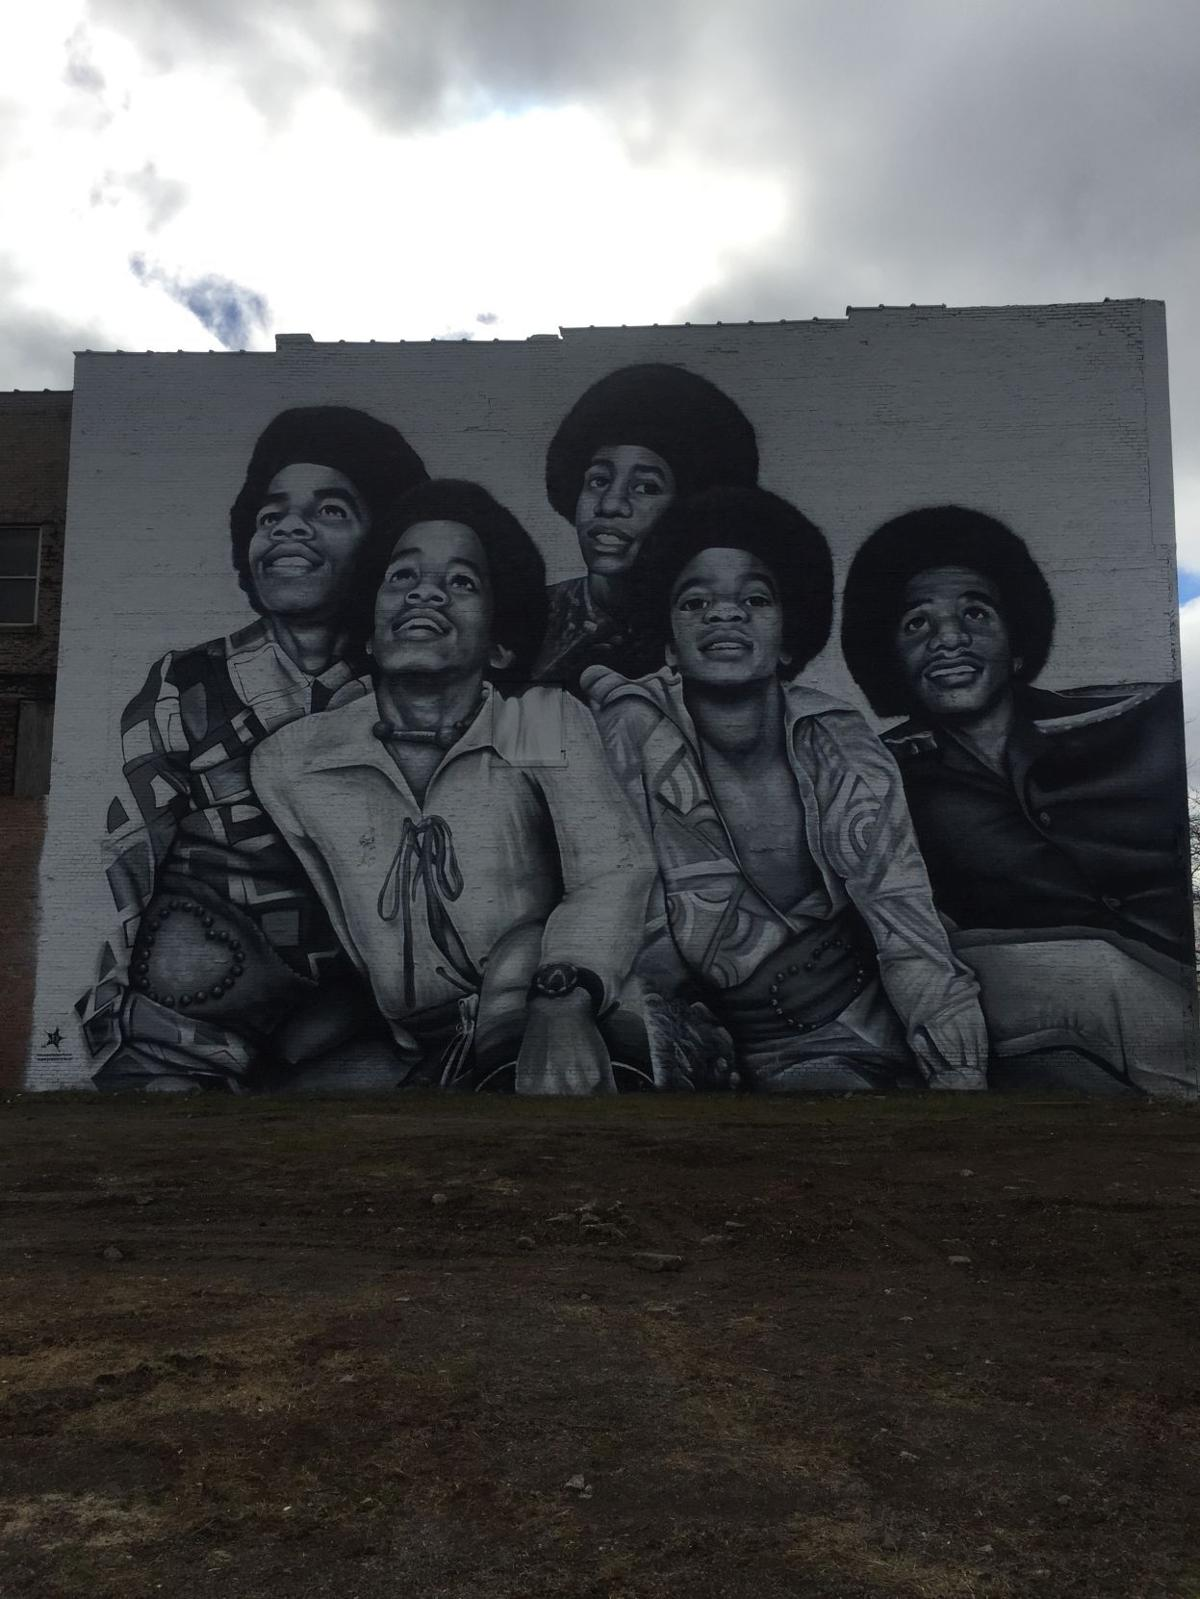 four story jackson 5 mural towers in downtown gary 219 On jackson 5 mural